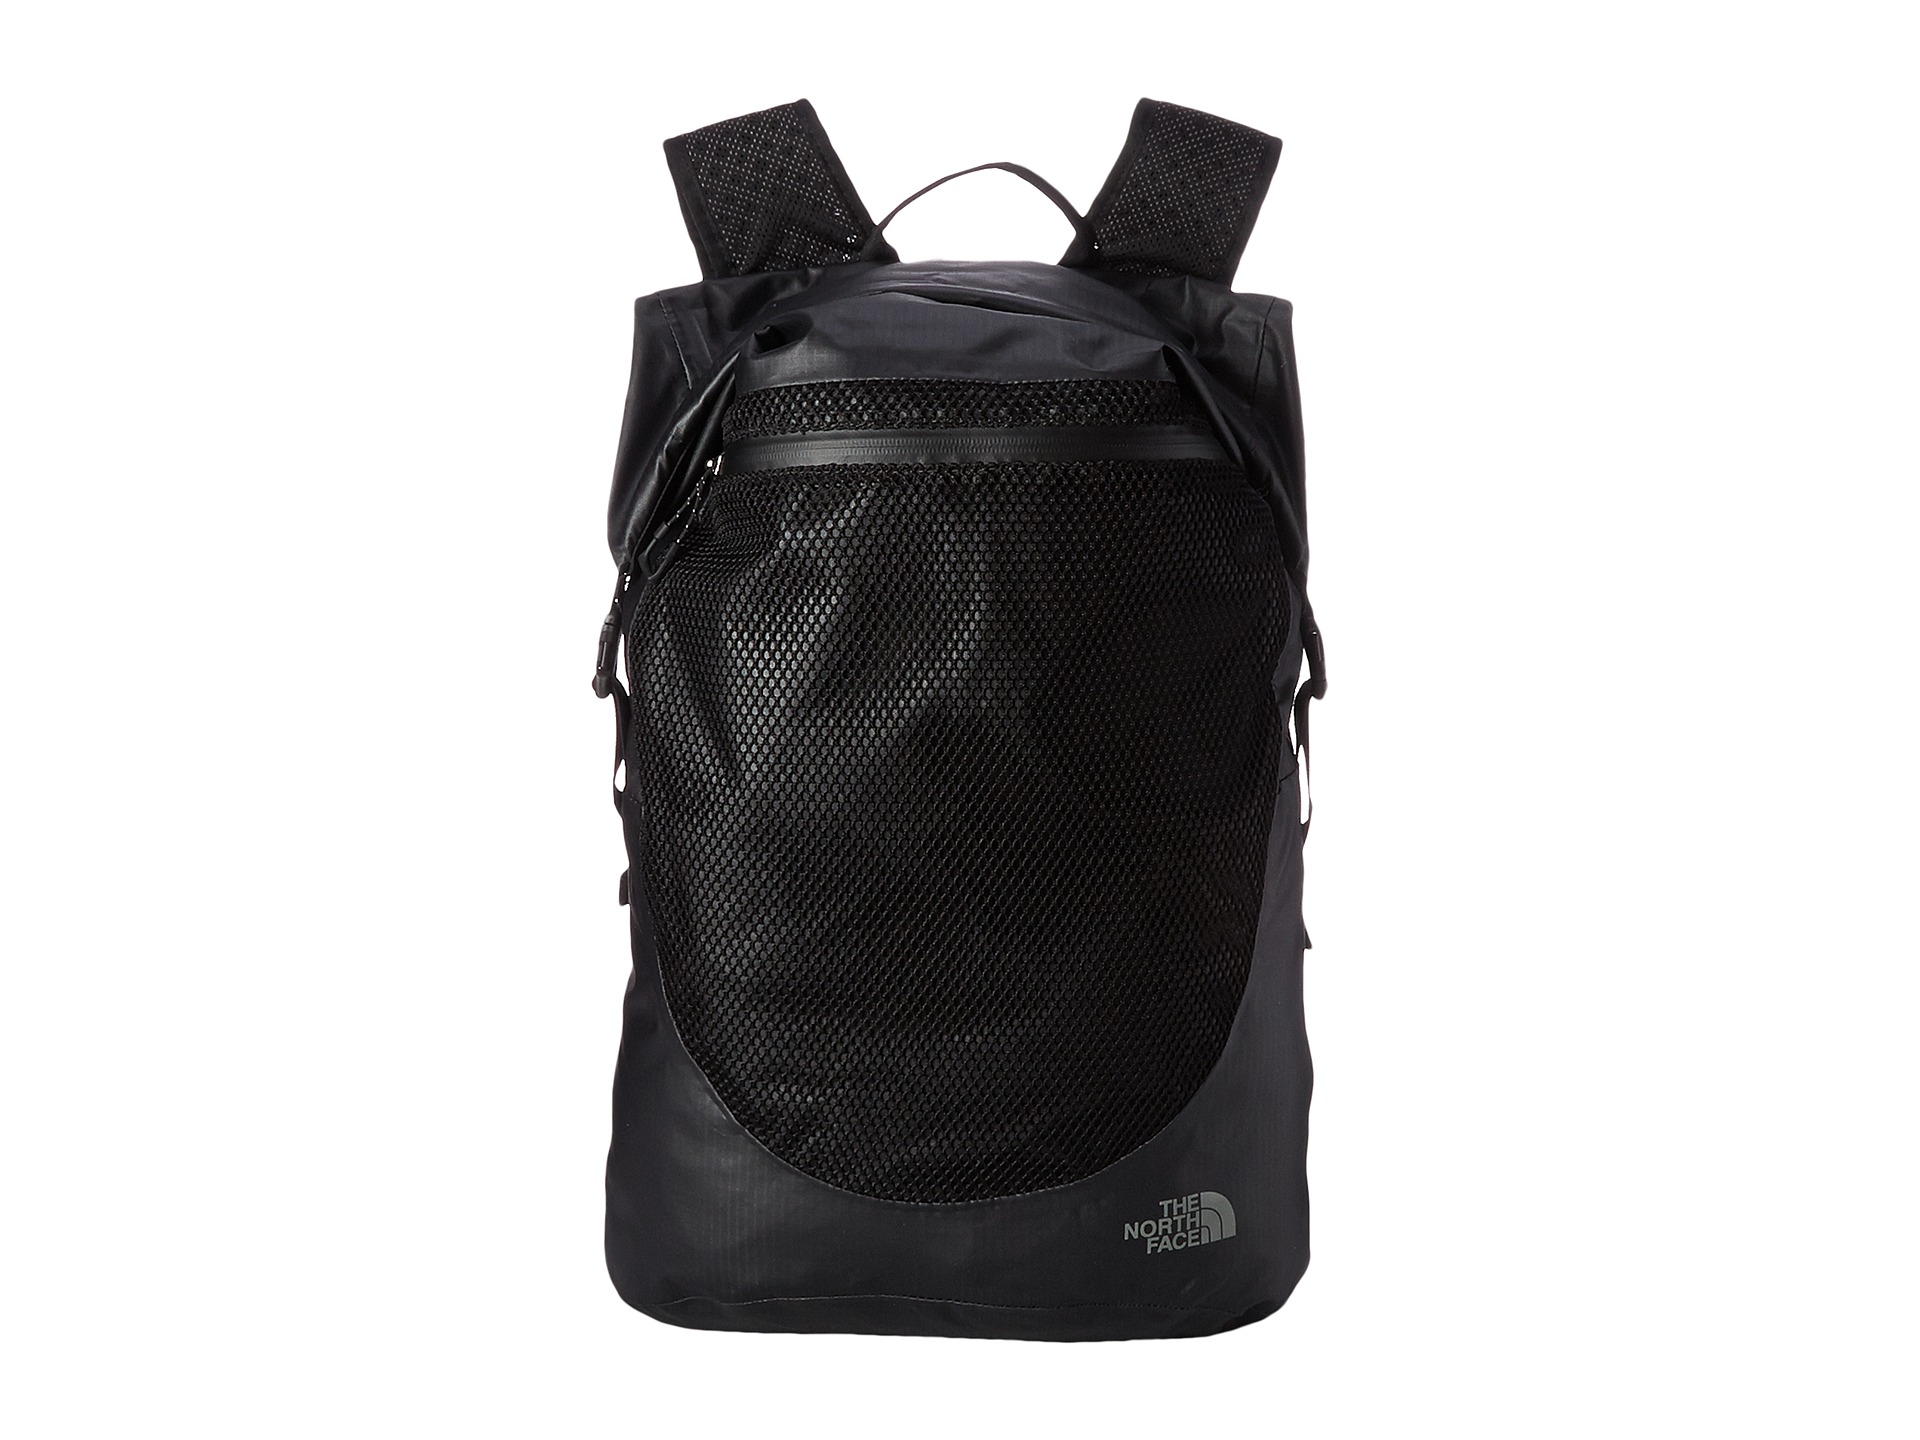 Lyst - The north face Waterproof Daypack in Black for Men